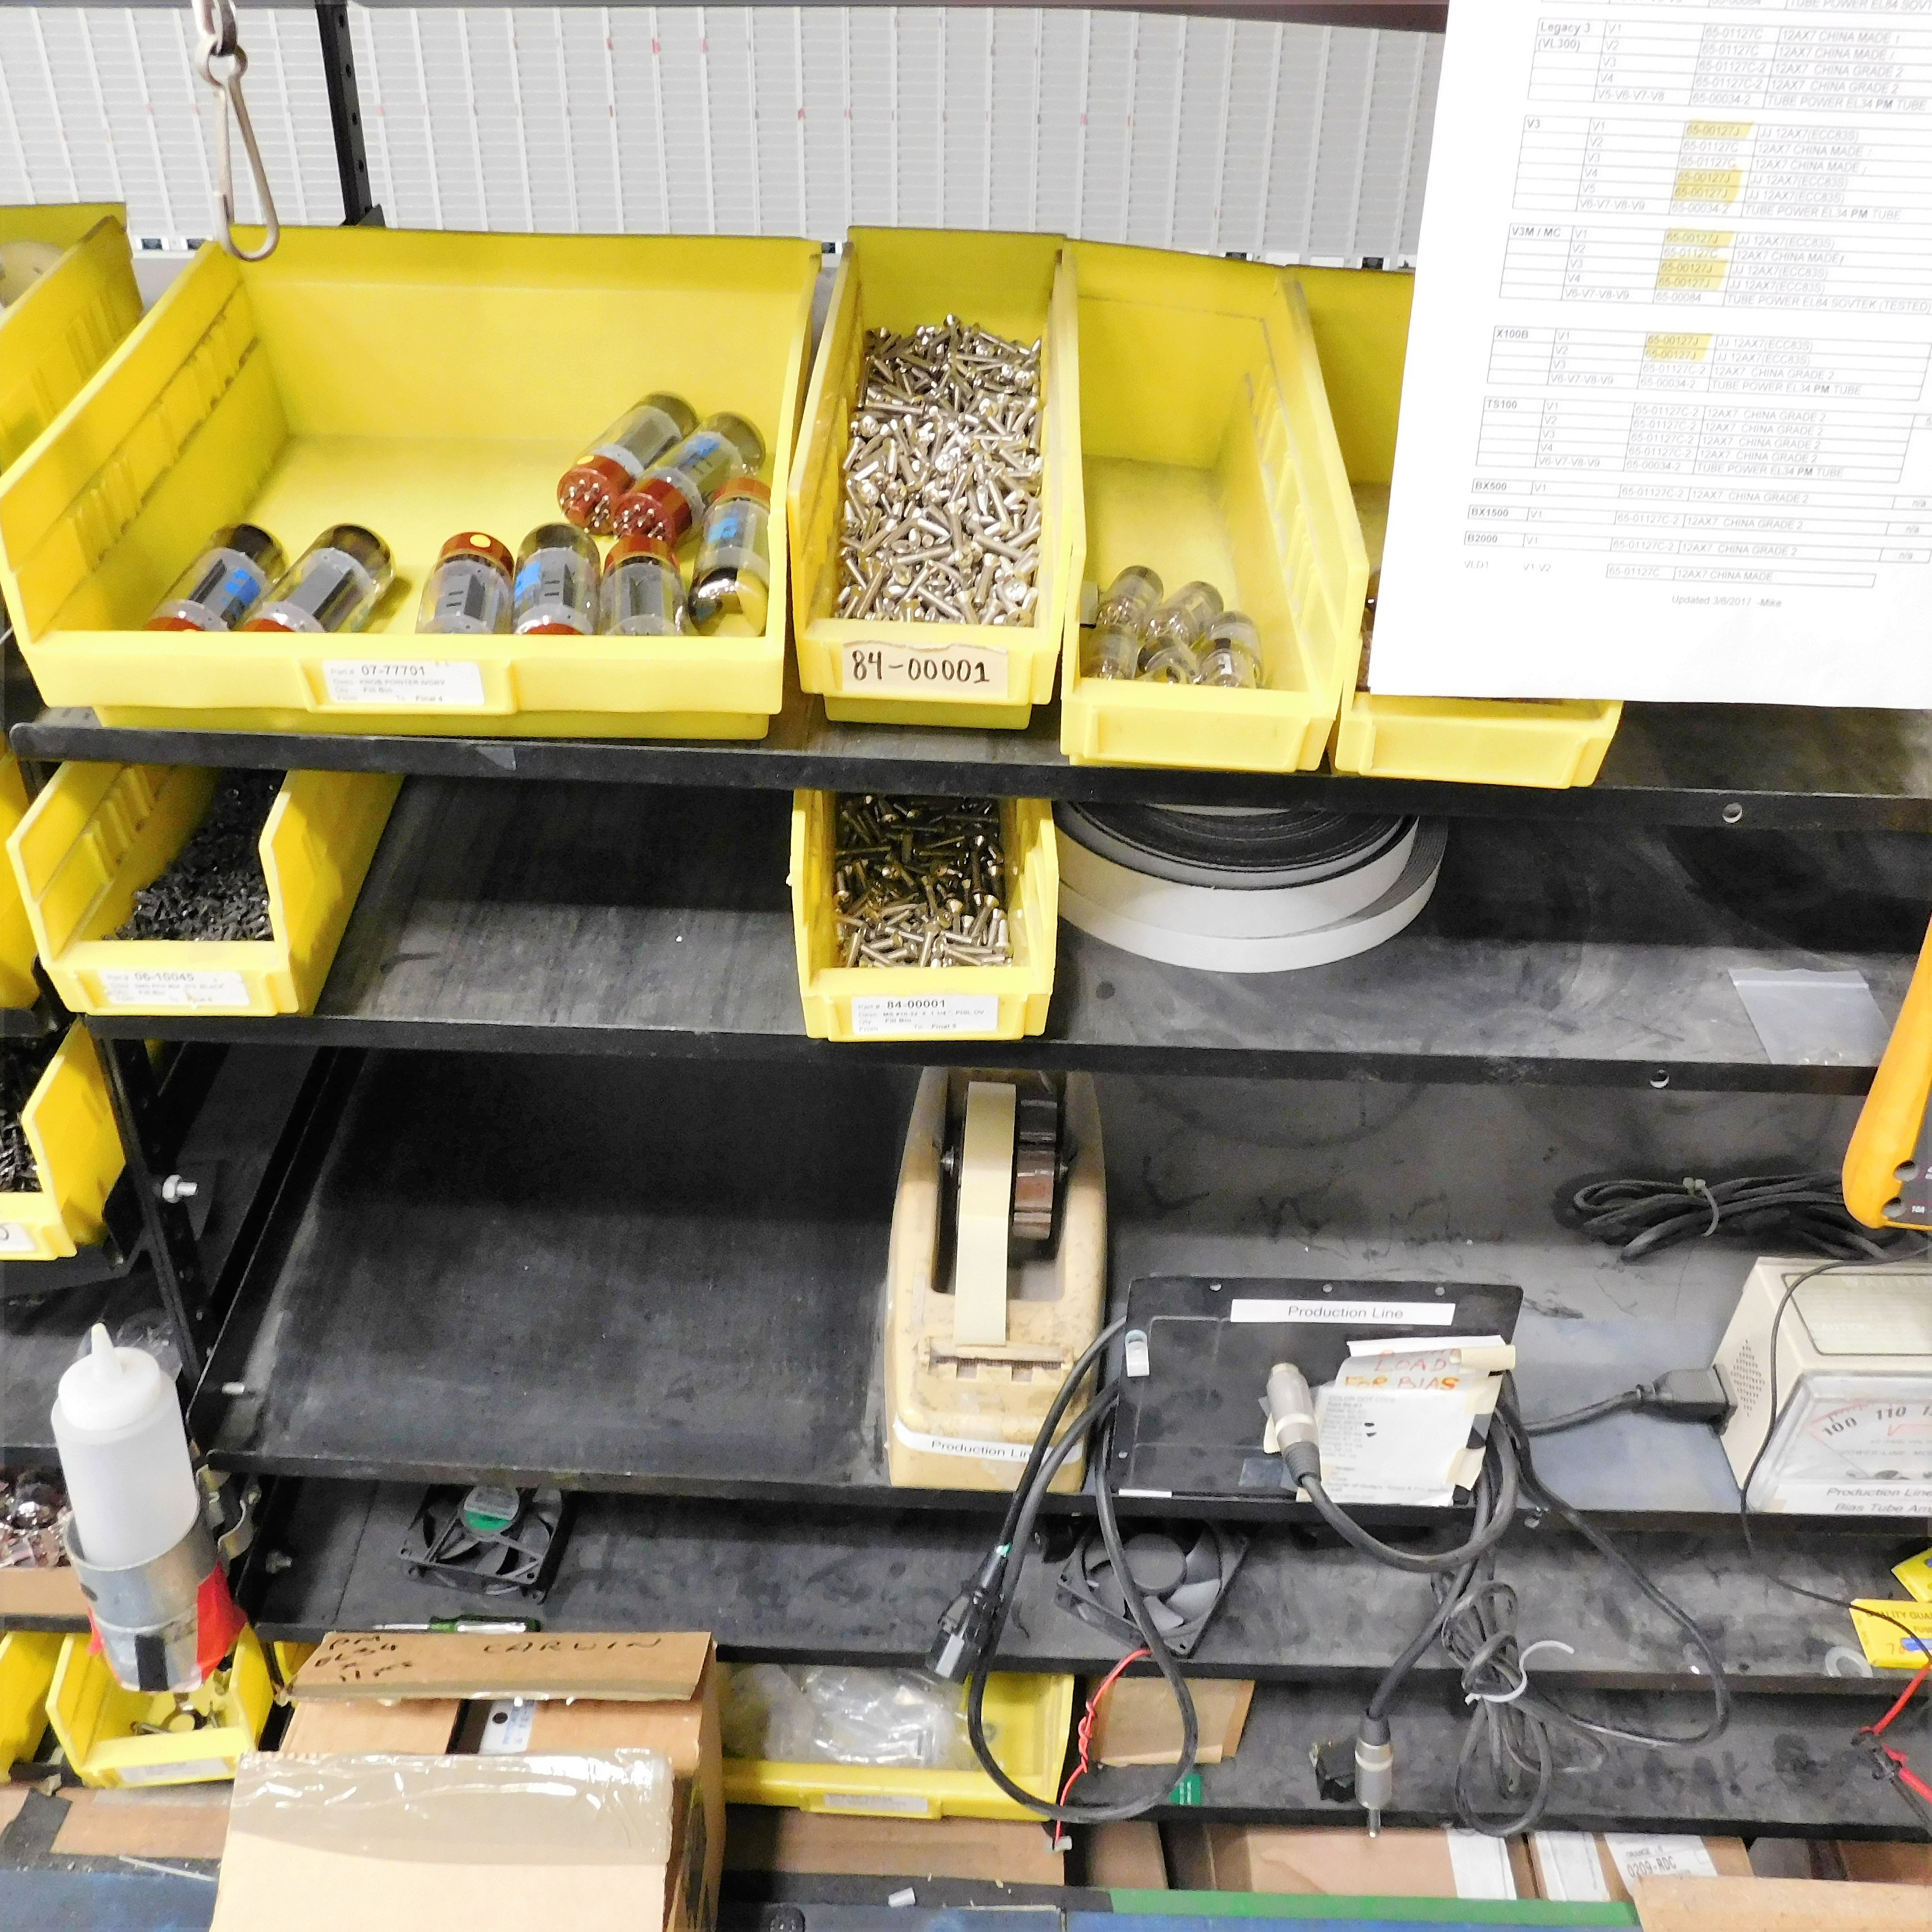 Lot 31 - LOT - 28' ELECTRONIC ASSEMBLY LINE TO INCLUDE: 28' ROLLER CONVEYOR, (8) PNEUMATIC TORQUE DRIVERS,